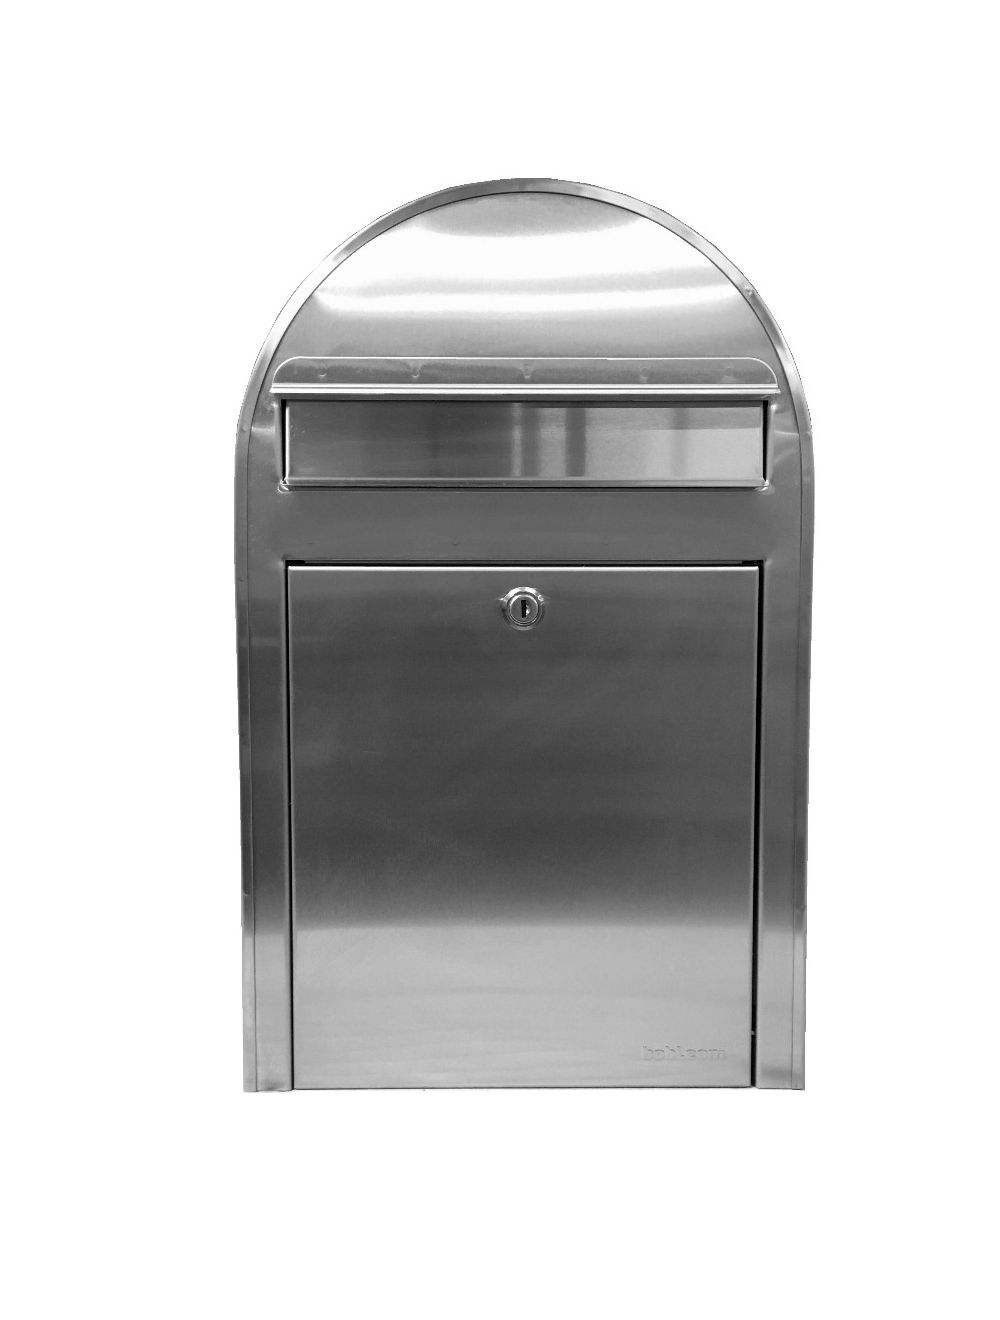 USPS Bobi Classic (S) Slim Stainless Steel Front Access Lockable Mailbox